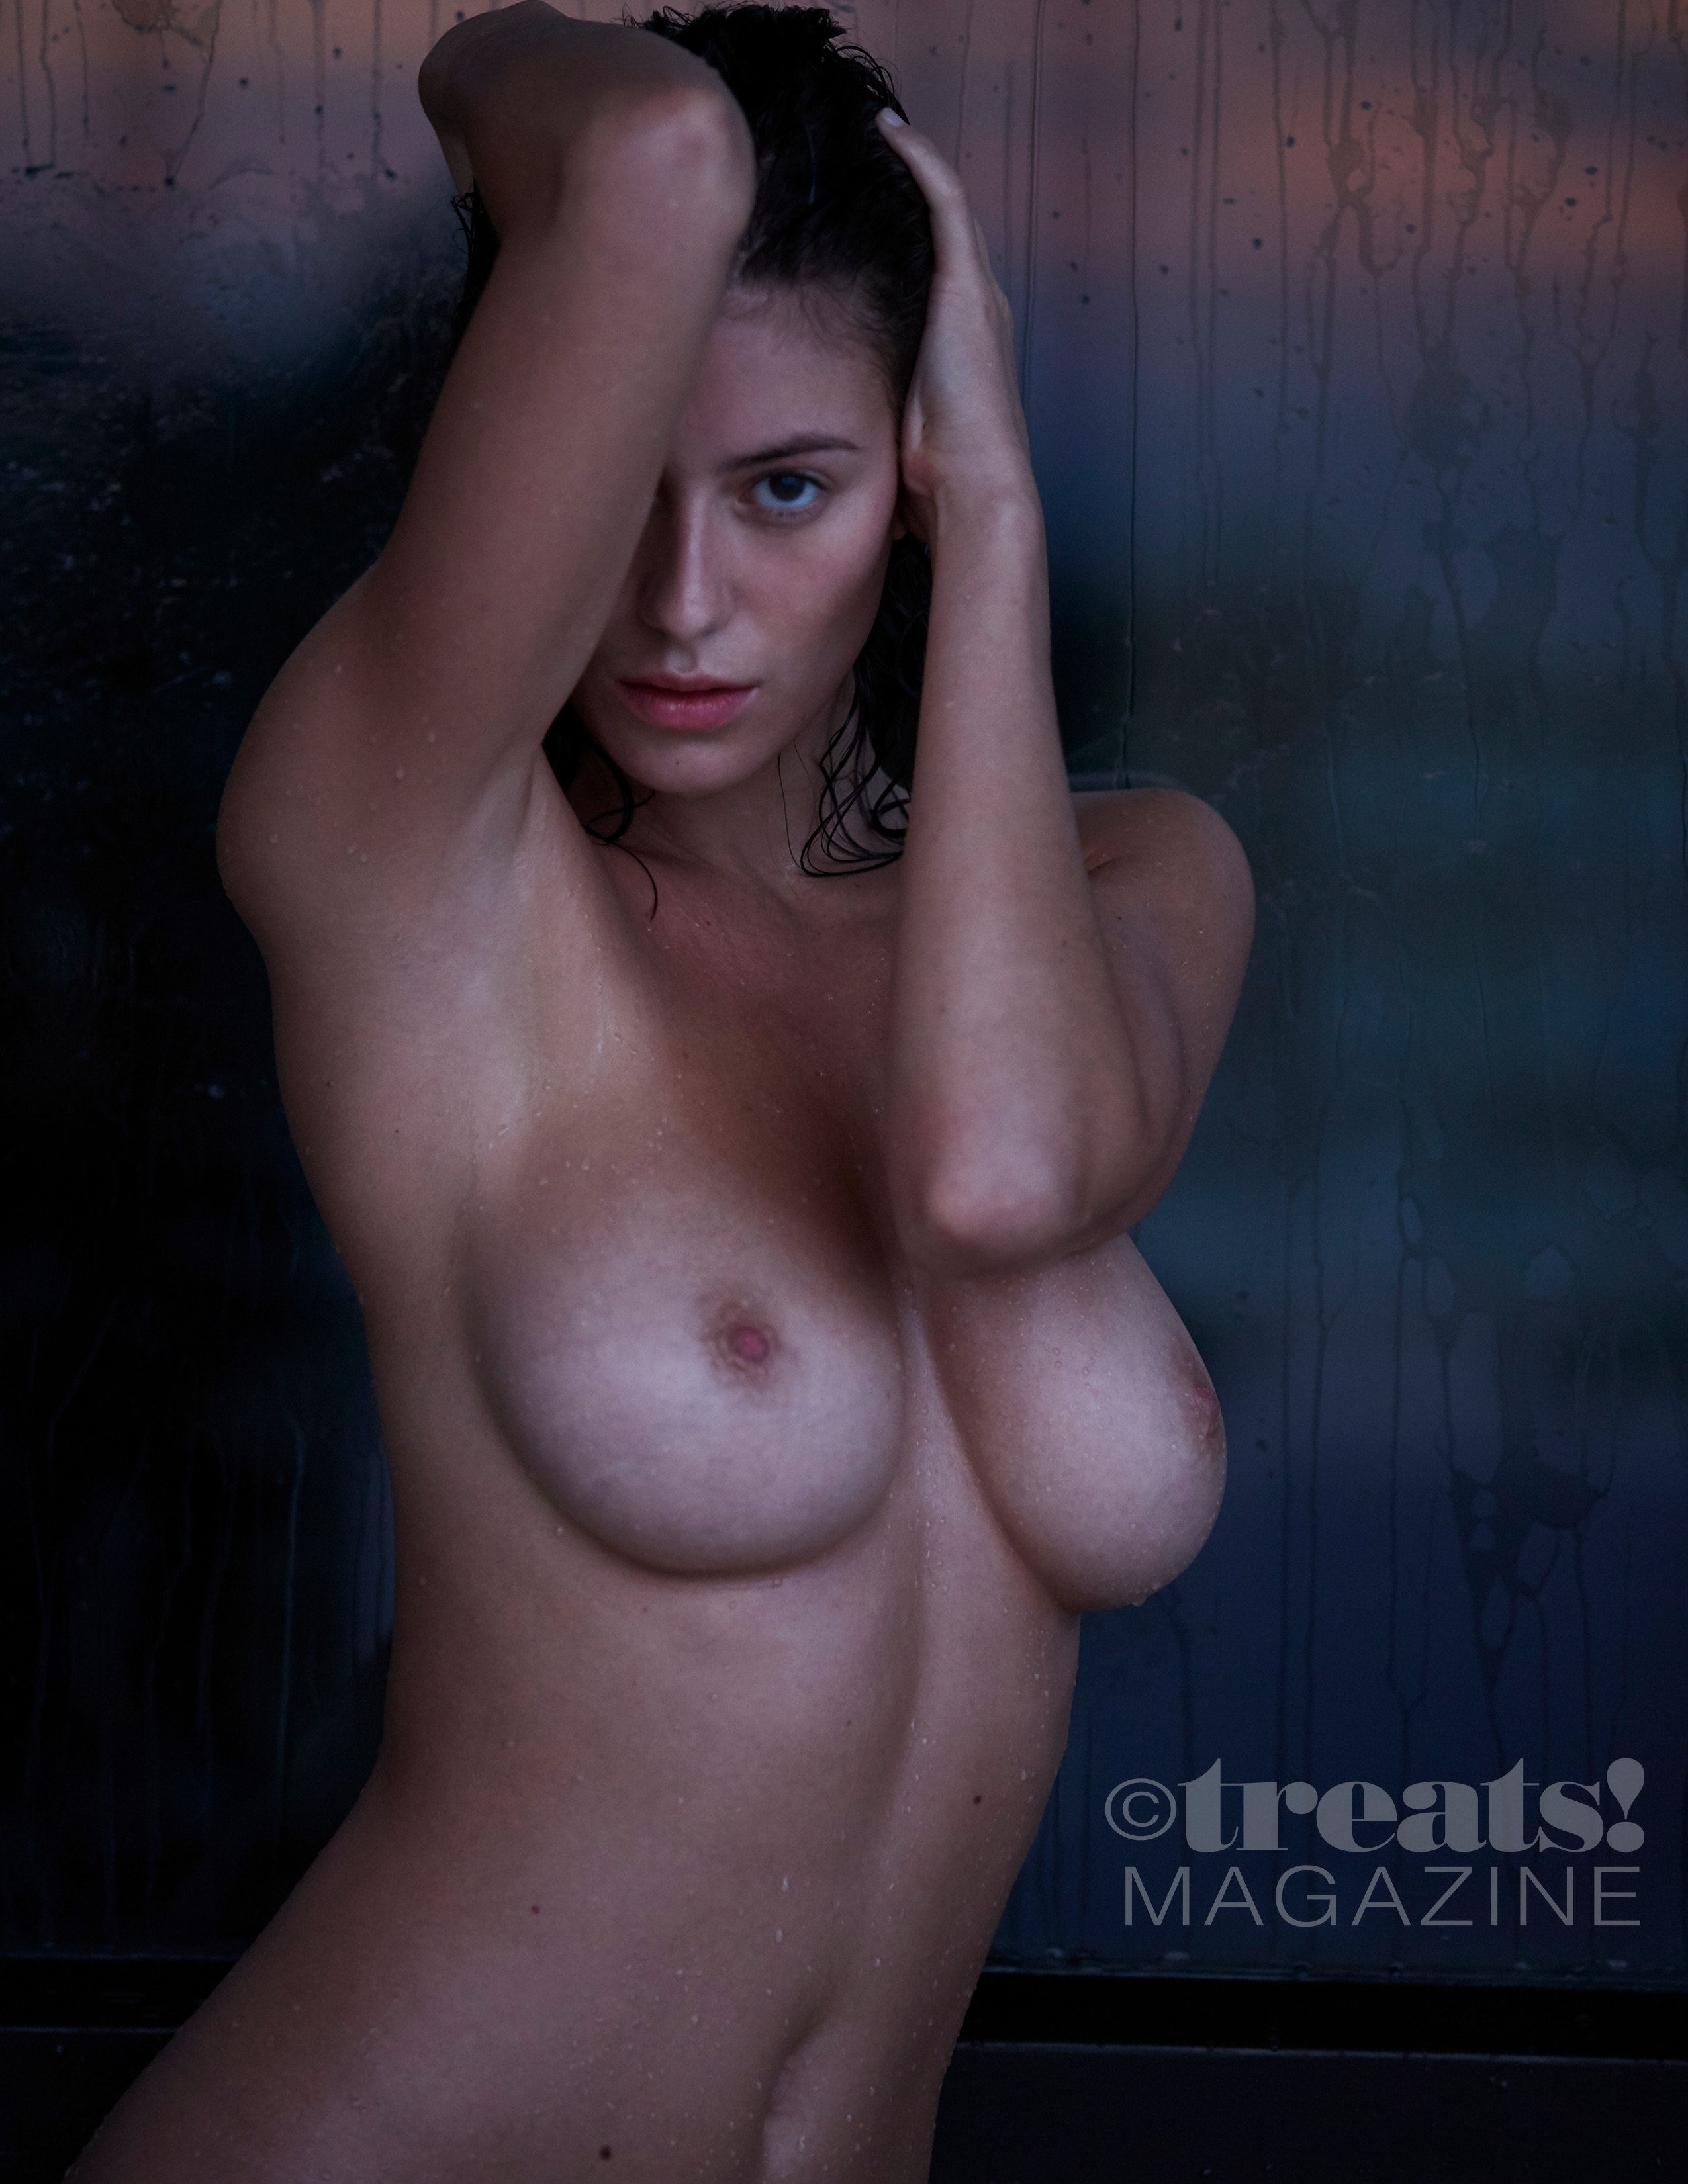 alejandra-guilmant-perfect-nude-body-erotic-treats-magazine-by-david-bellemere-24